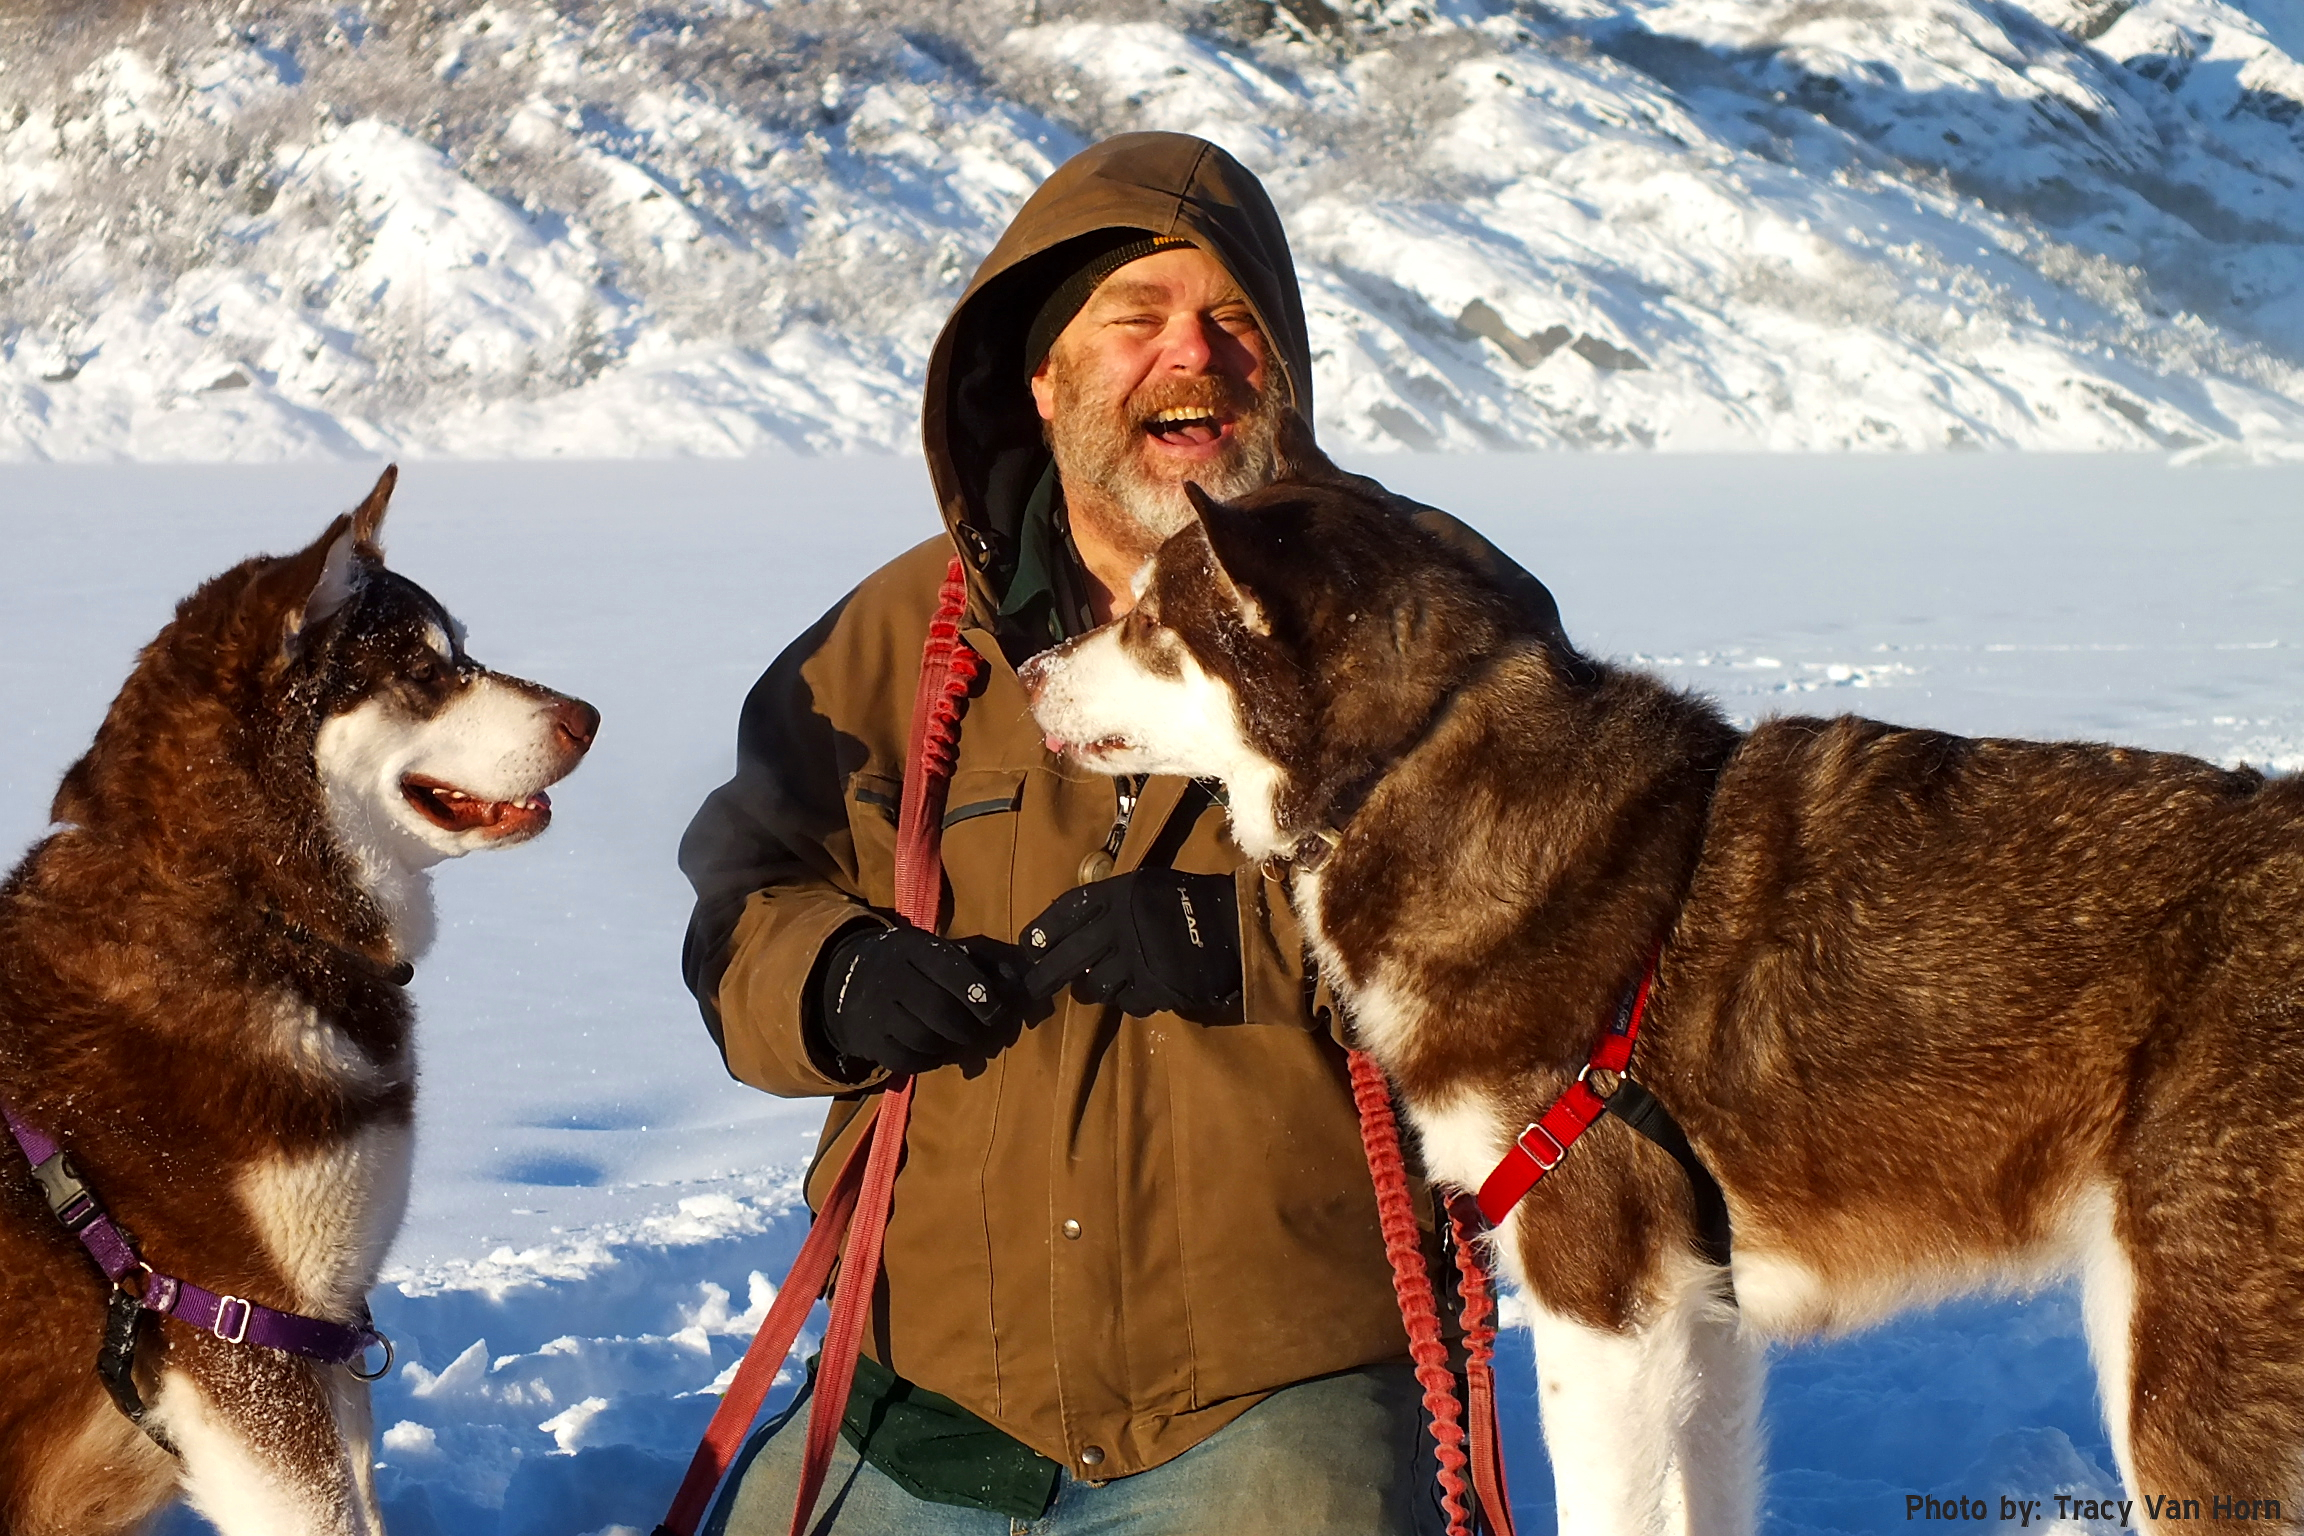 The Two that Make 3 with Me - In Love. Mendenhall Glacier Juneau Alaska. From Puppy Mill to the big screen an Alaskan Cinderella Story: Skadi & Freya ~ Thank you for your Kindness and Support (PLEASE CLICK LIKE!)